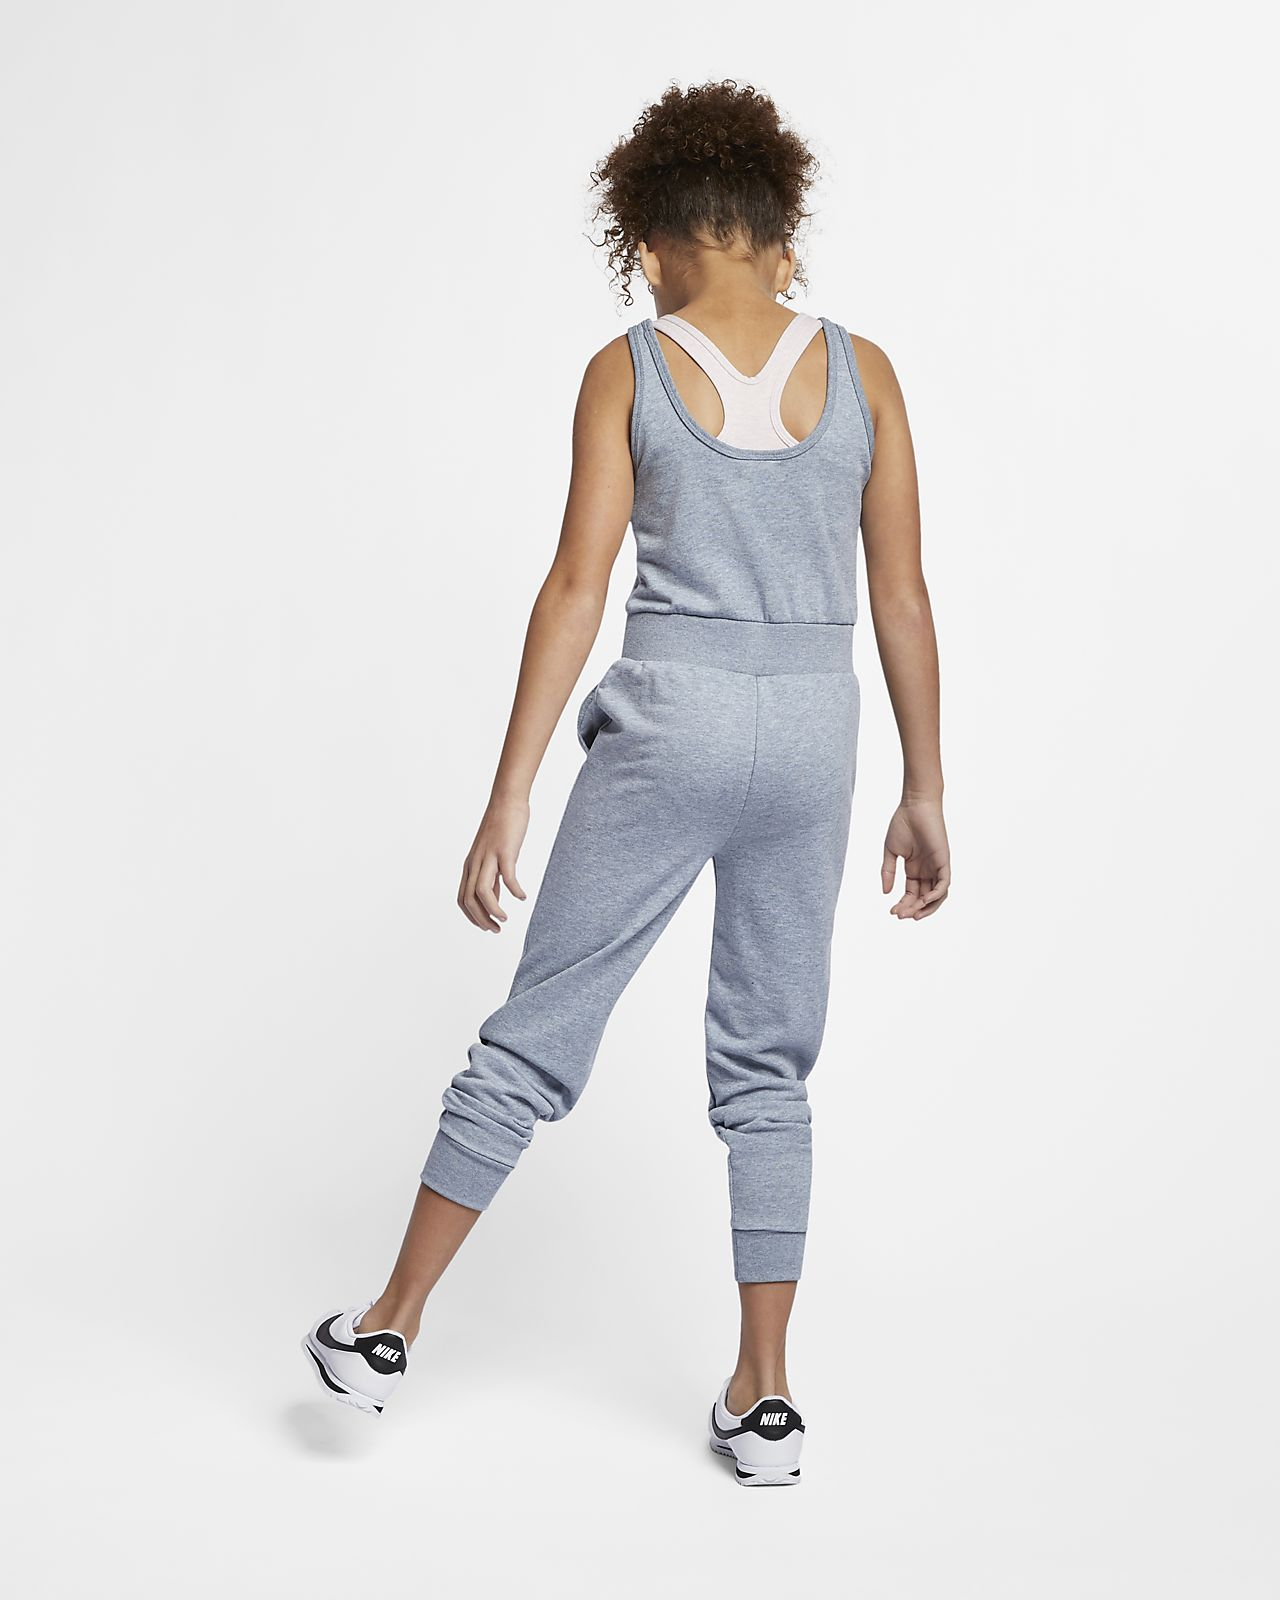 9224270a2c6 Nike Air Big Kids  (Girls ) Jumpsuit. Nike.com